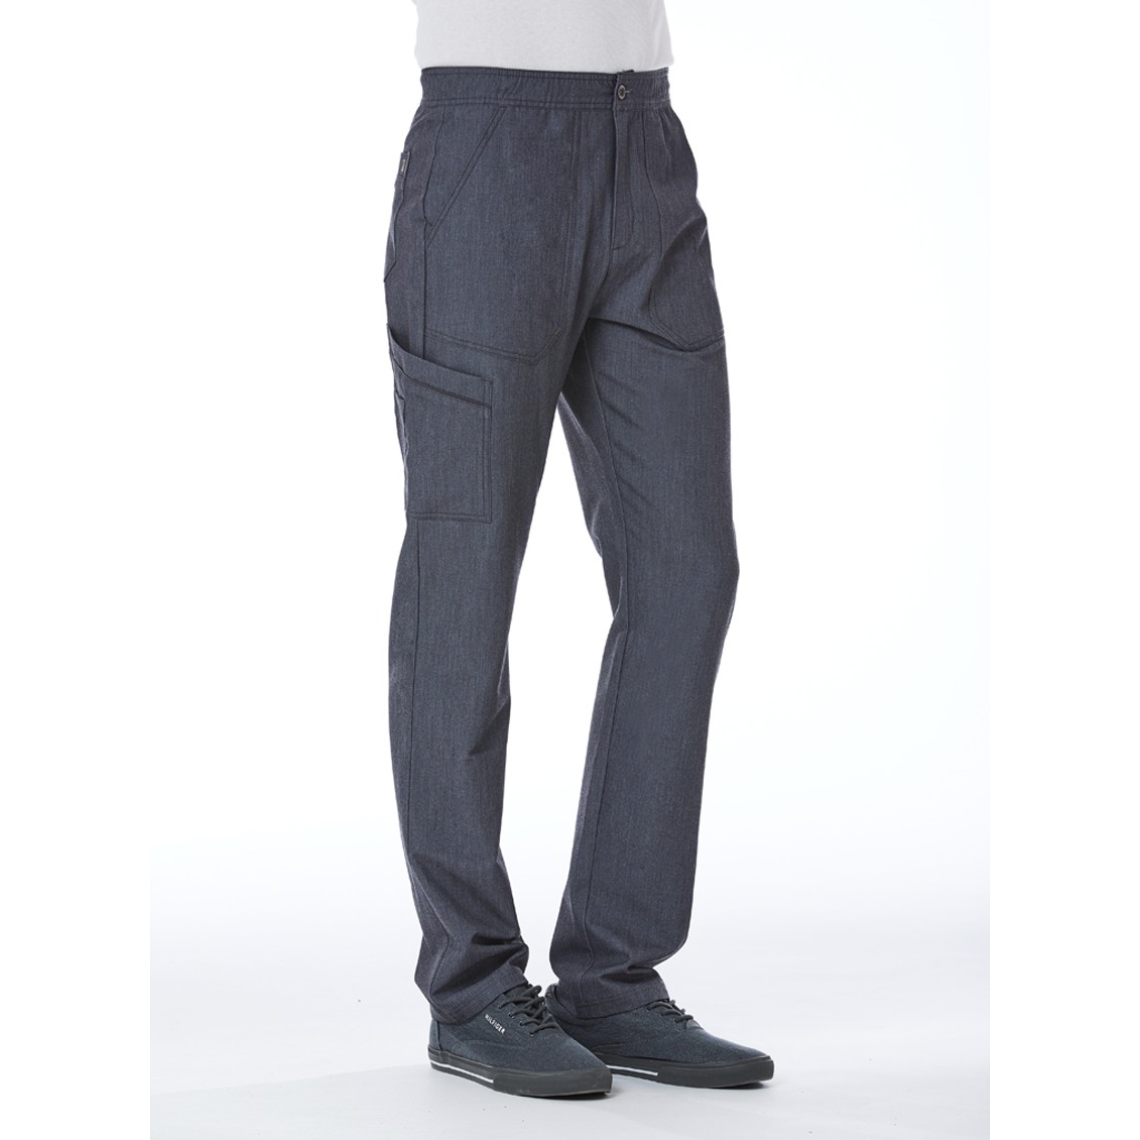 Men's Contrast Piping Cargo Pant 8901 INSEAM 31''